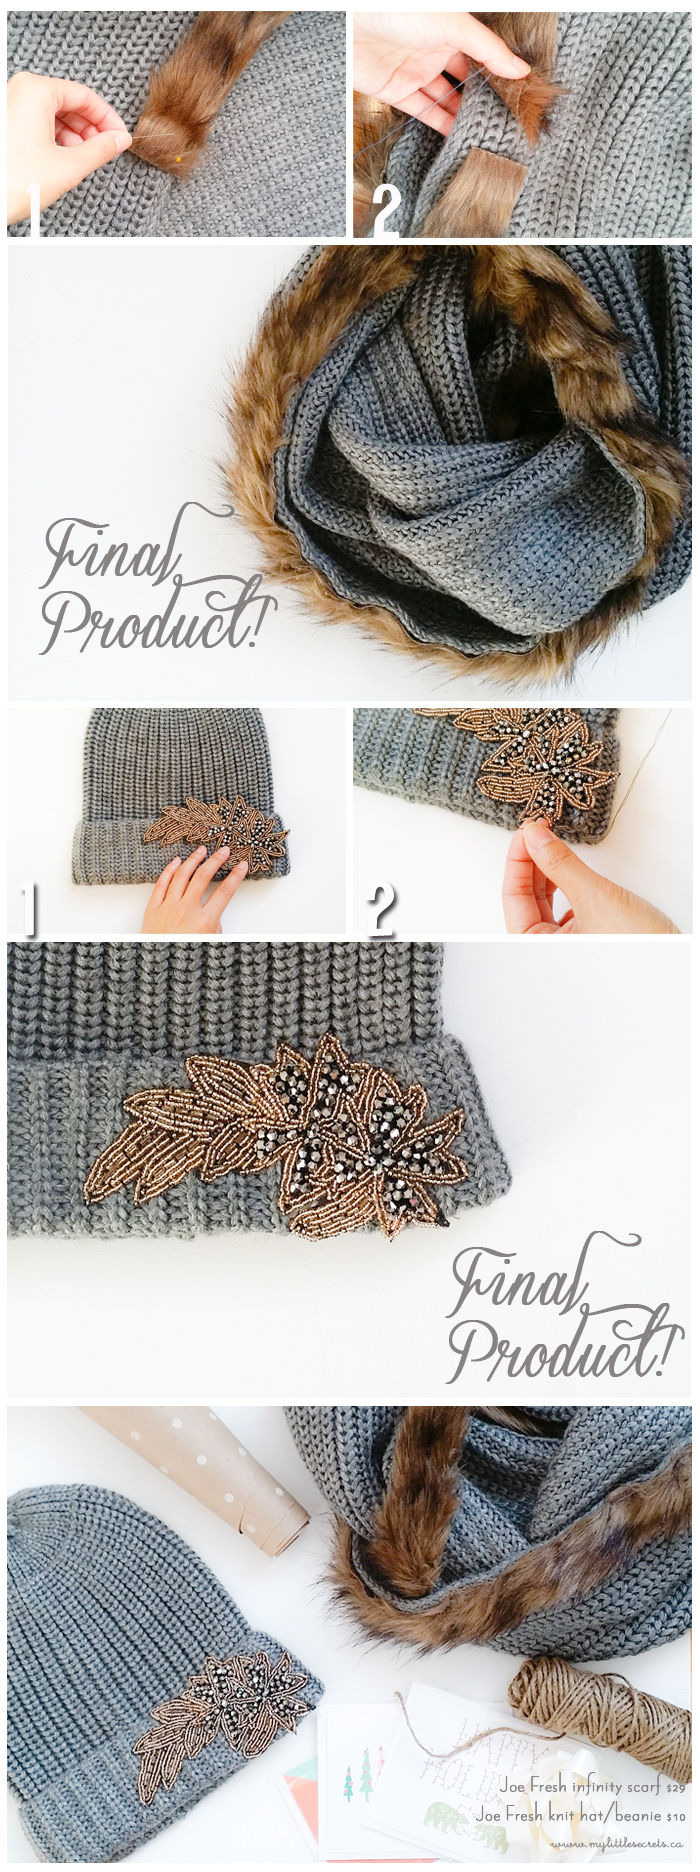 DIY Joe Fresh infinity scarf and hat